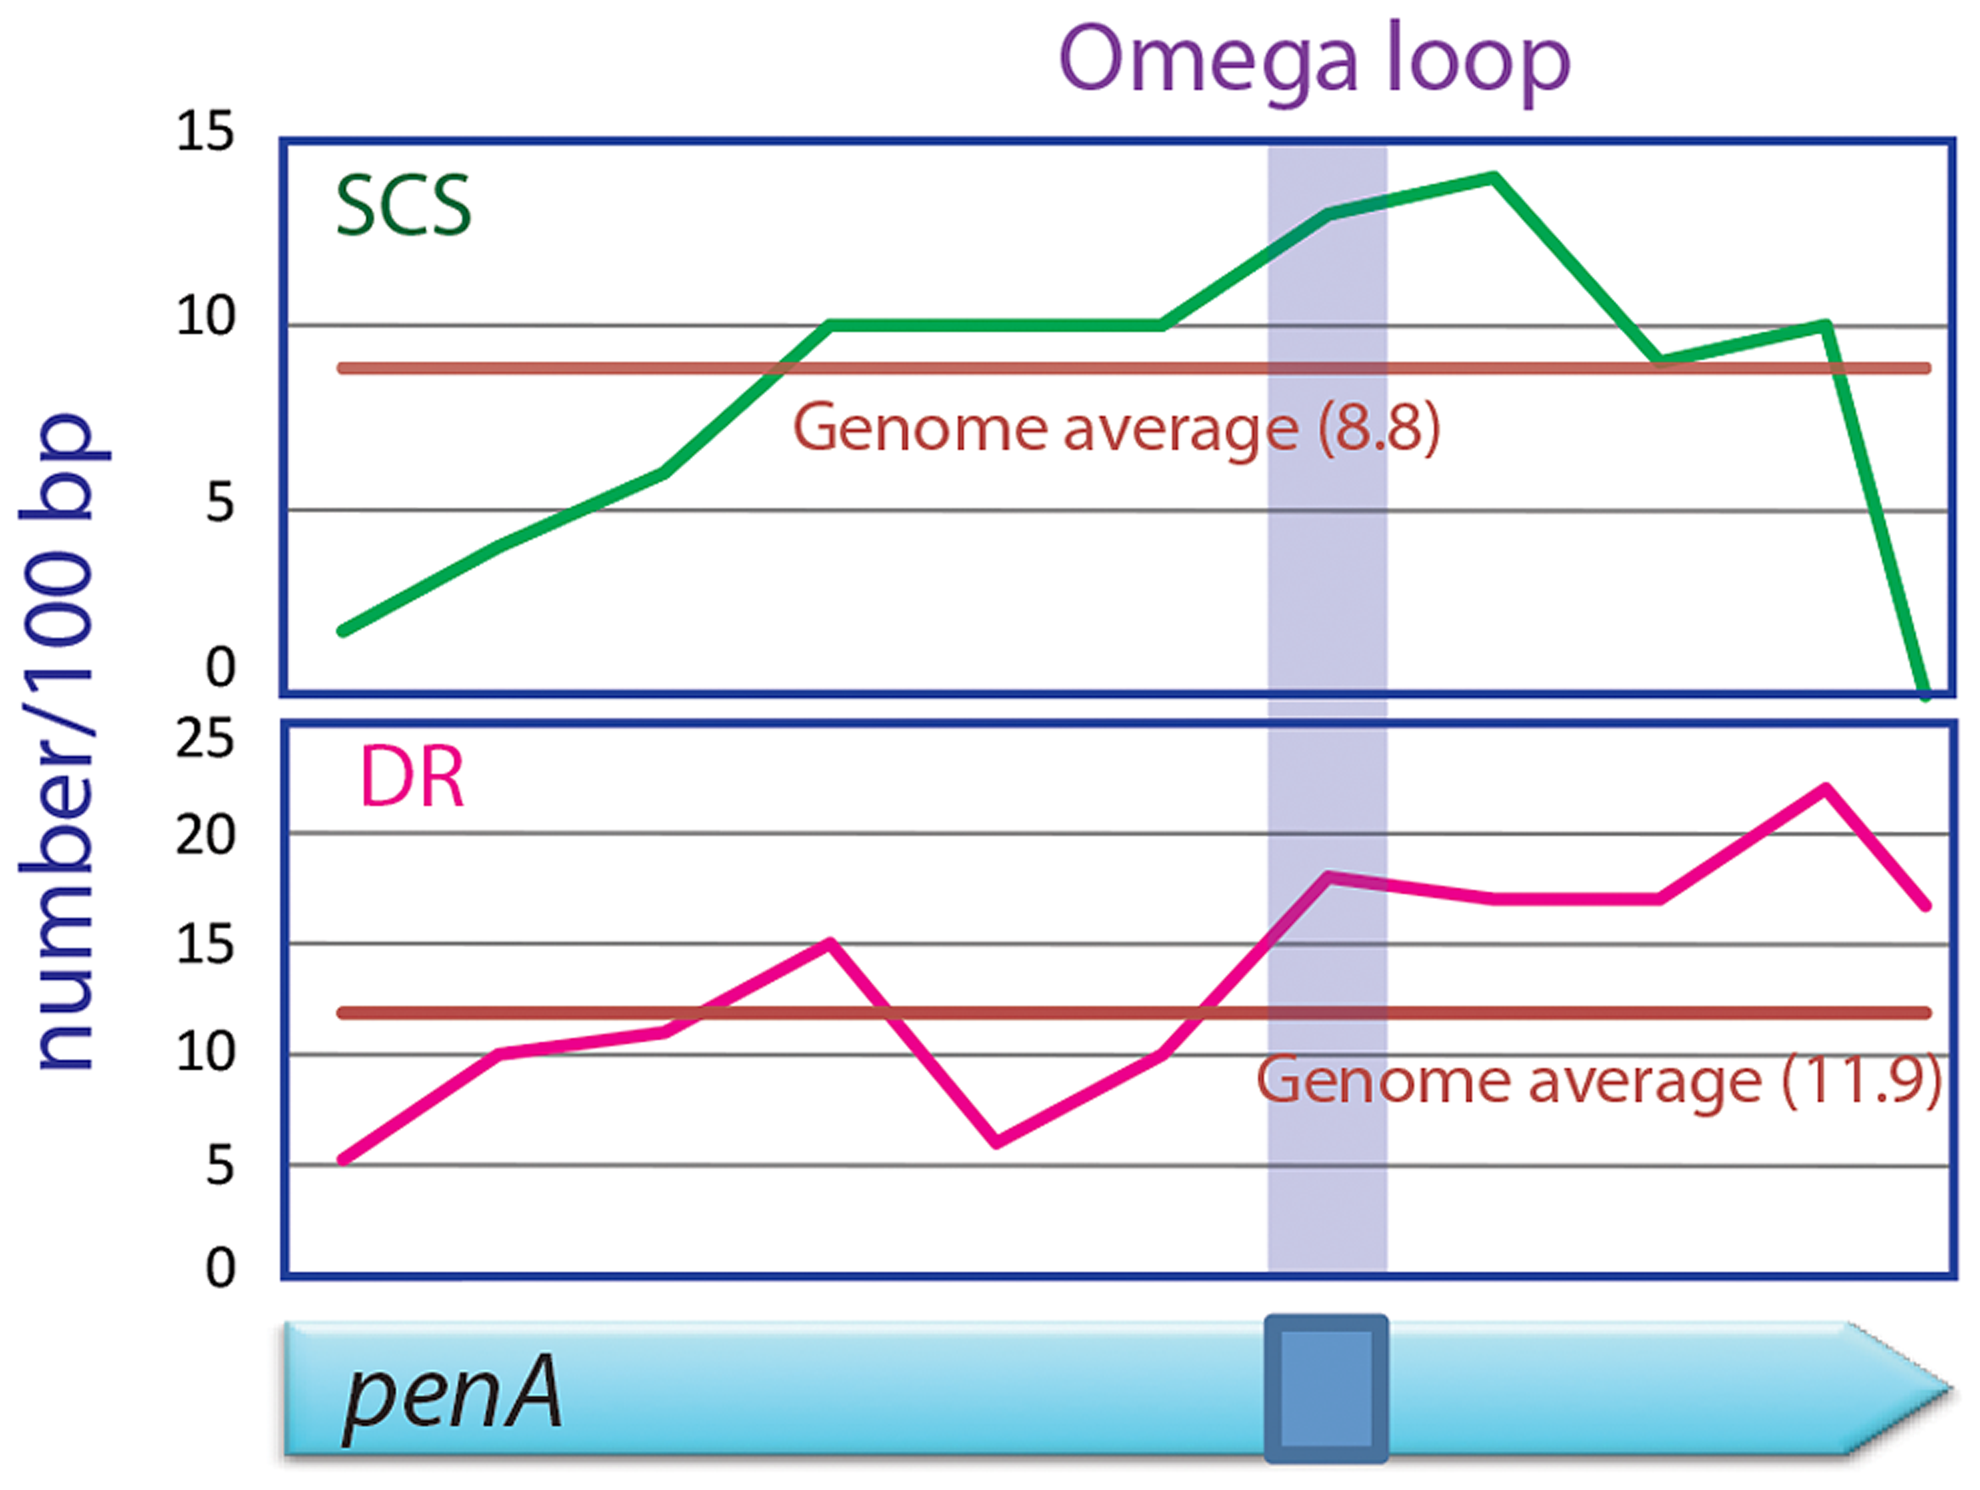 SCSs and direct repeats contents in the omega loop compared with the rest of the <i>penA</i> gene and the genome of <i>B. thailandensis</i>.